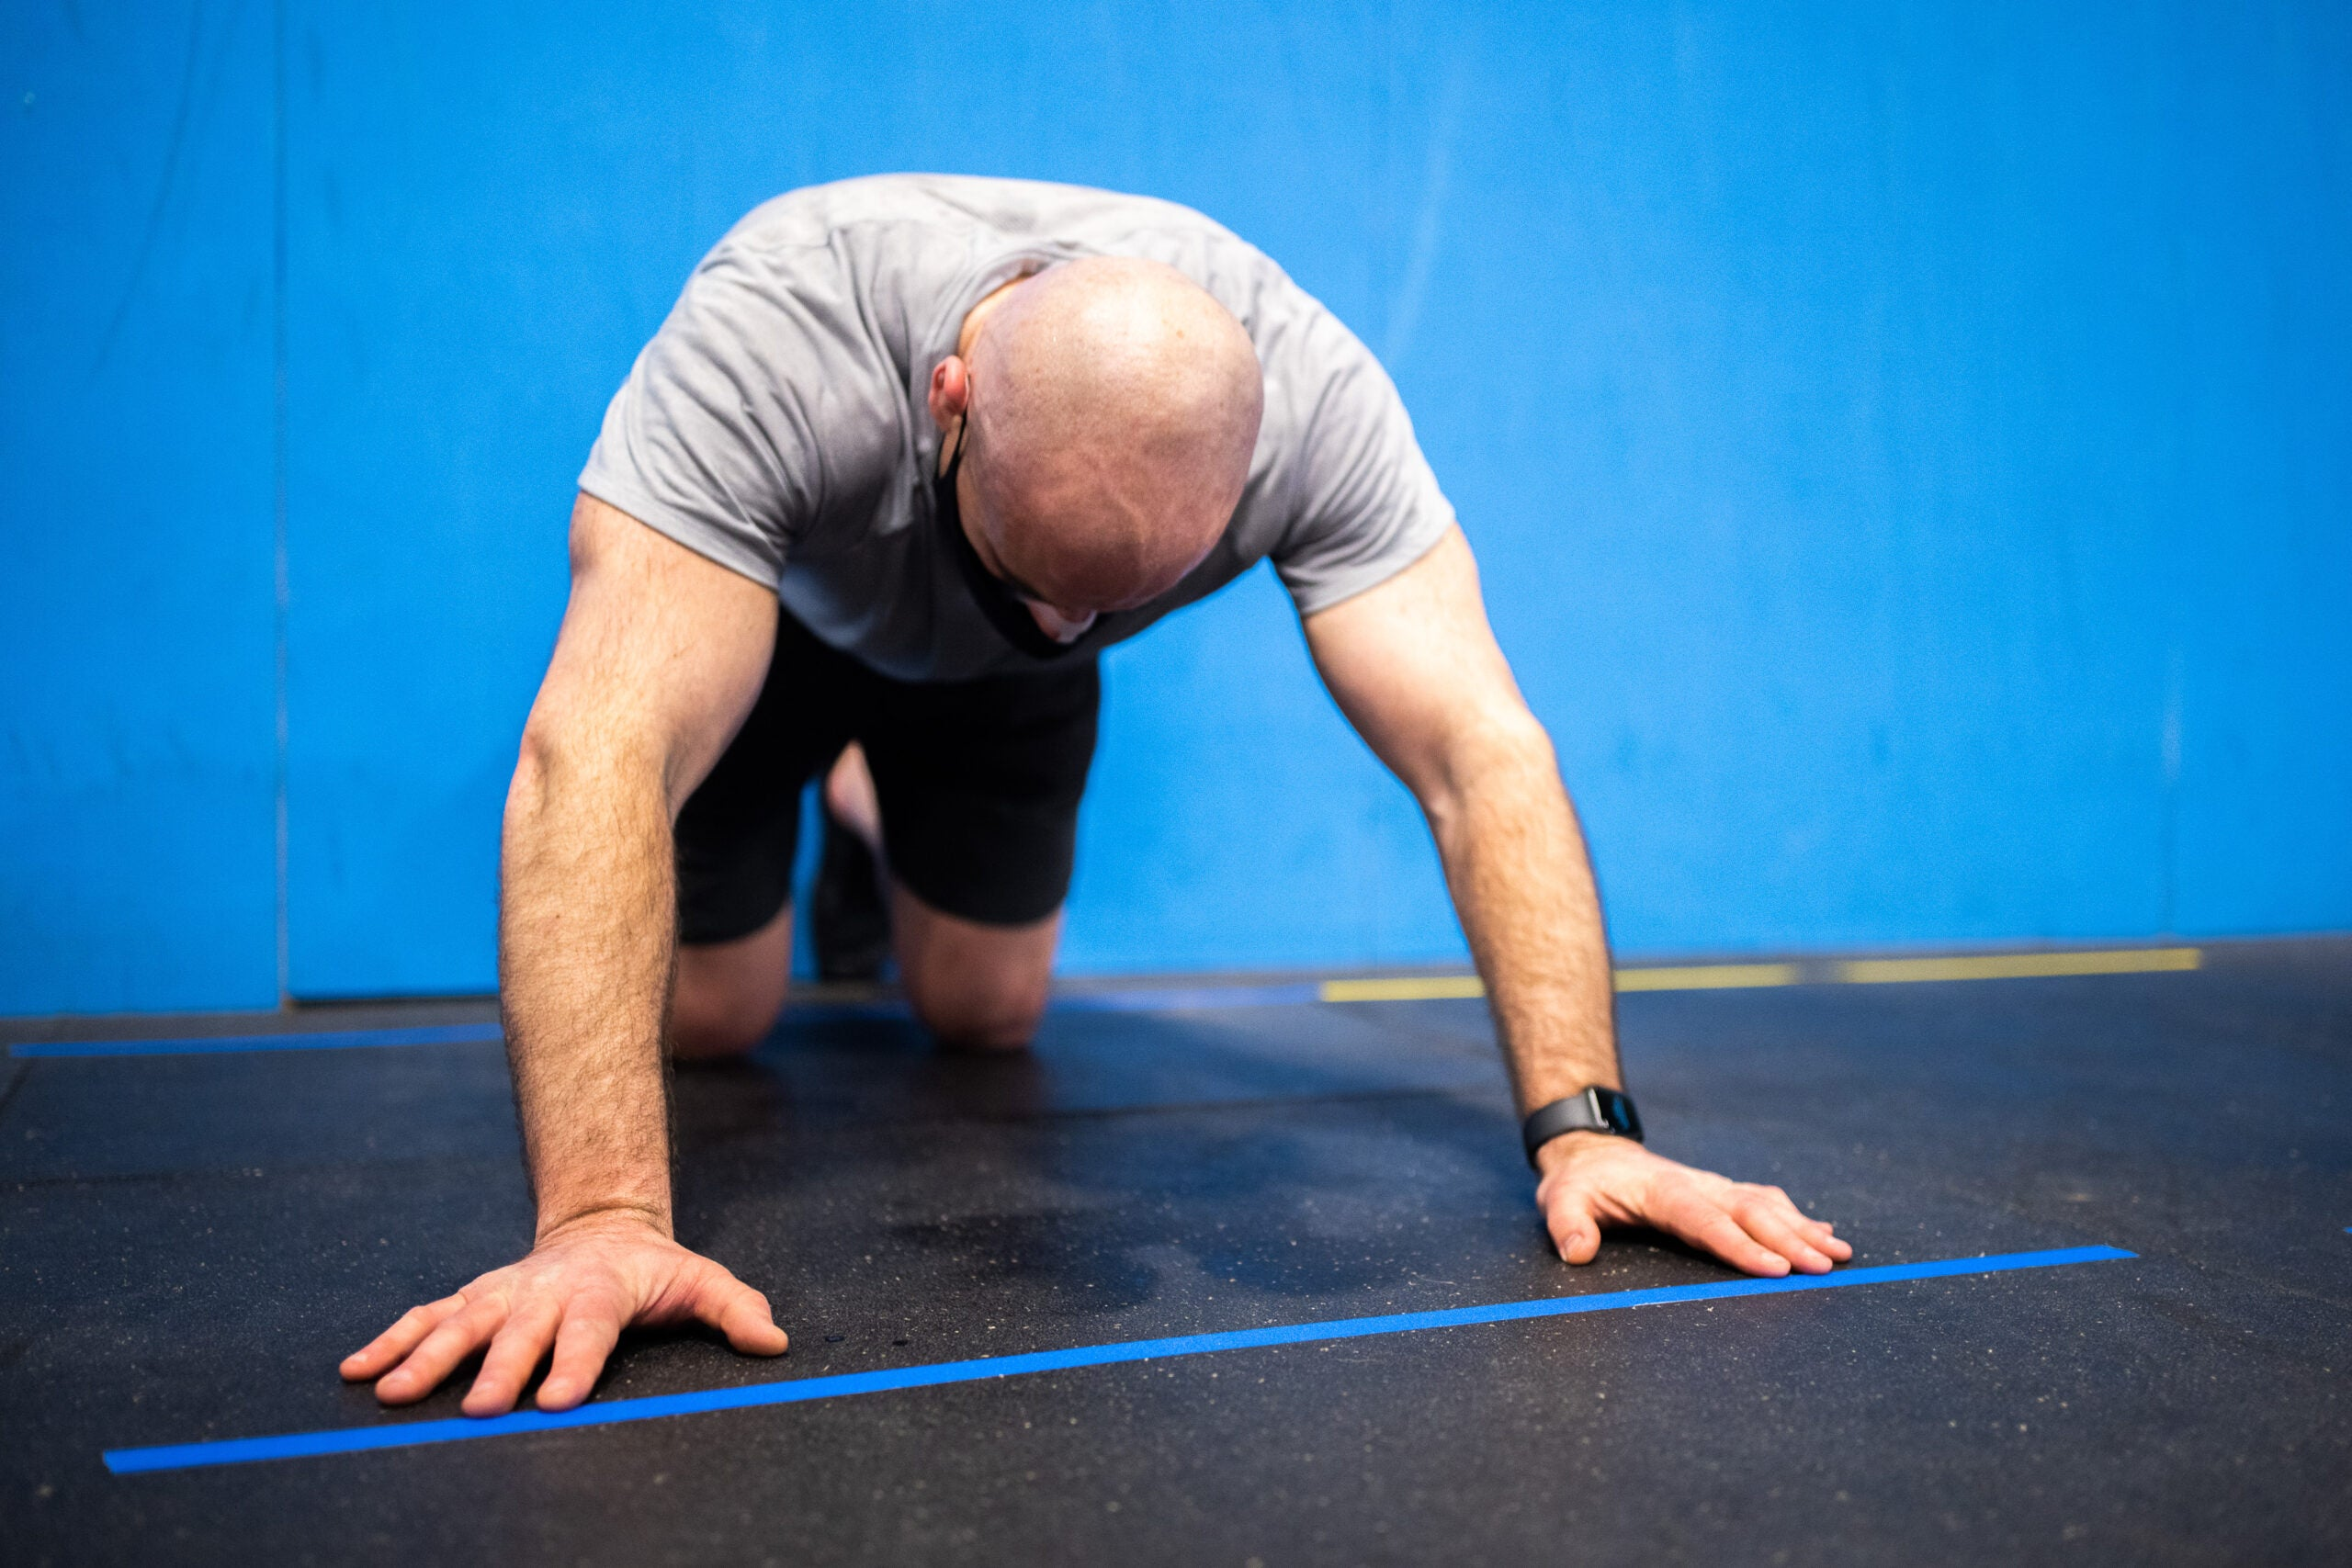 A man on hands and knees on an exercise mat, doing push ups